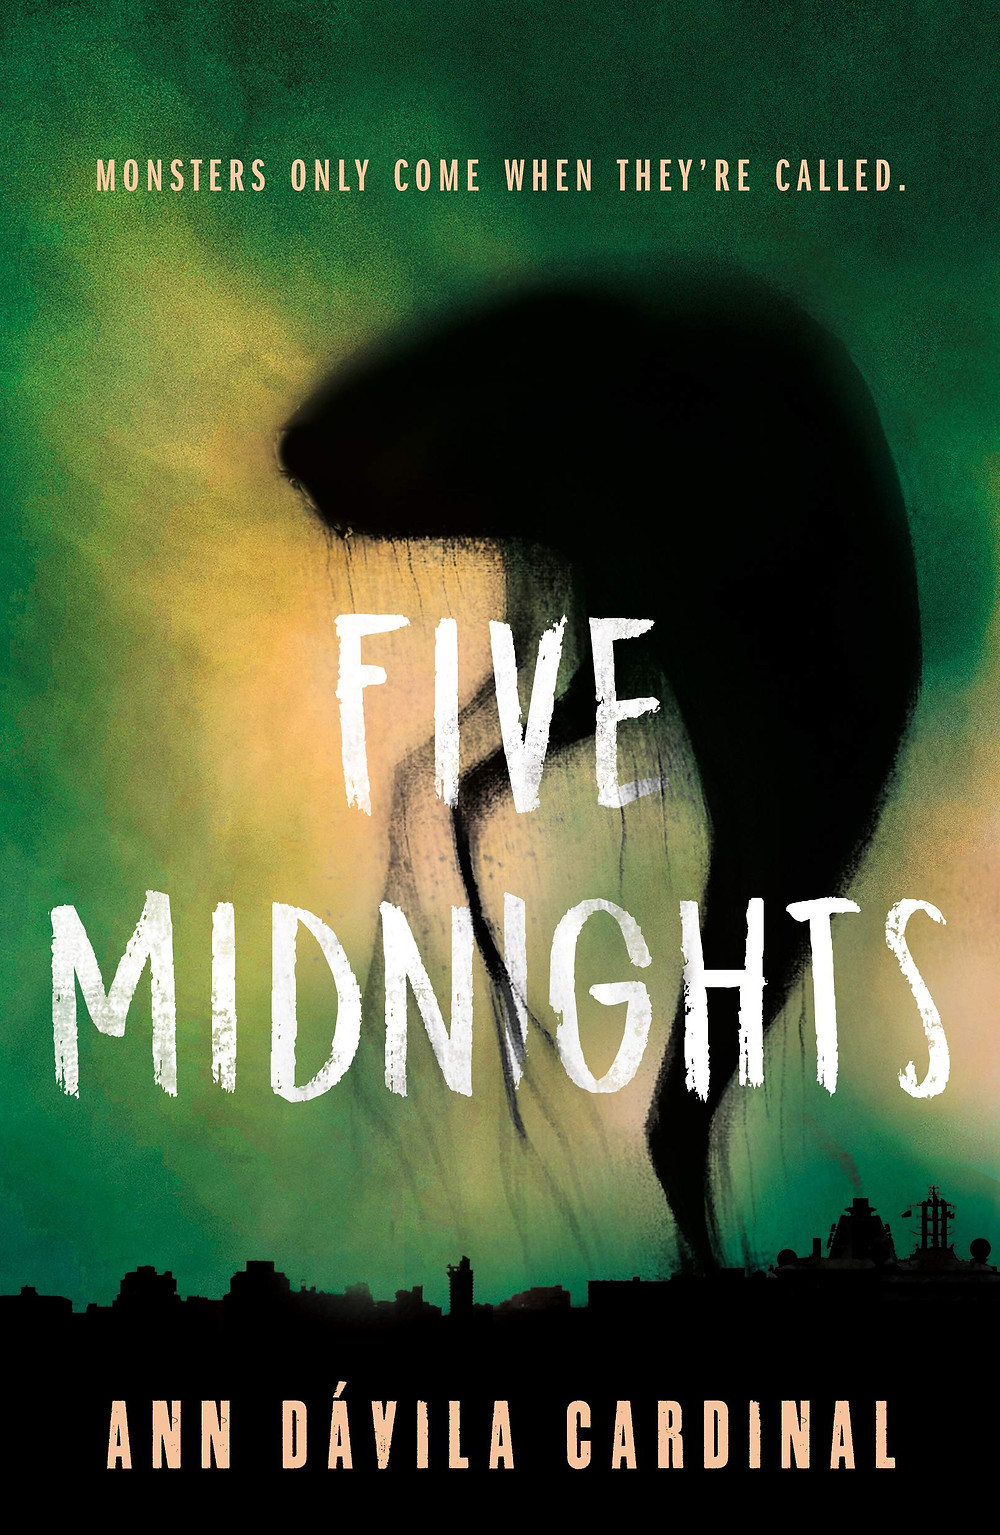 cover of five midnights by ann davila cardinal